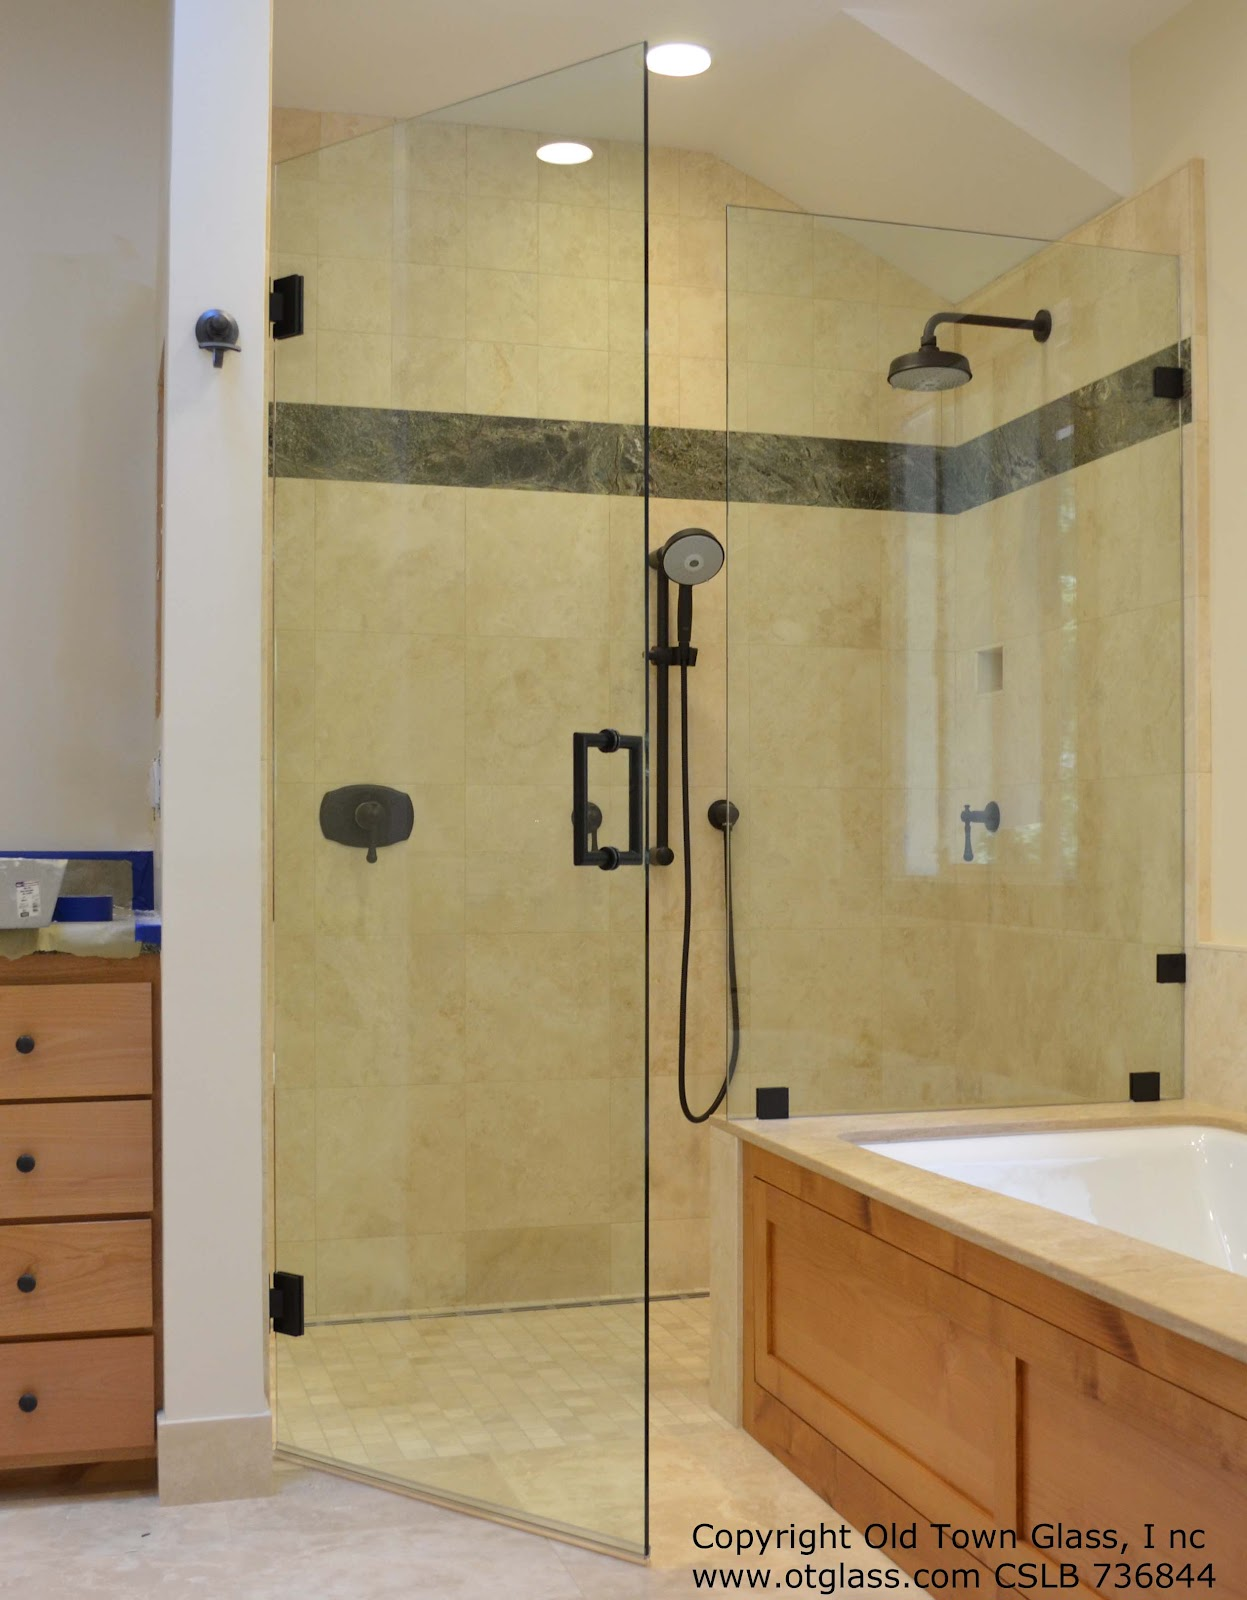 Shower Door Specifications As Photographed Crl Oil Rubbed Bronze Geneva Hinges Back To Handle With Washers Uc77 Glass